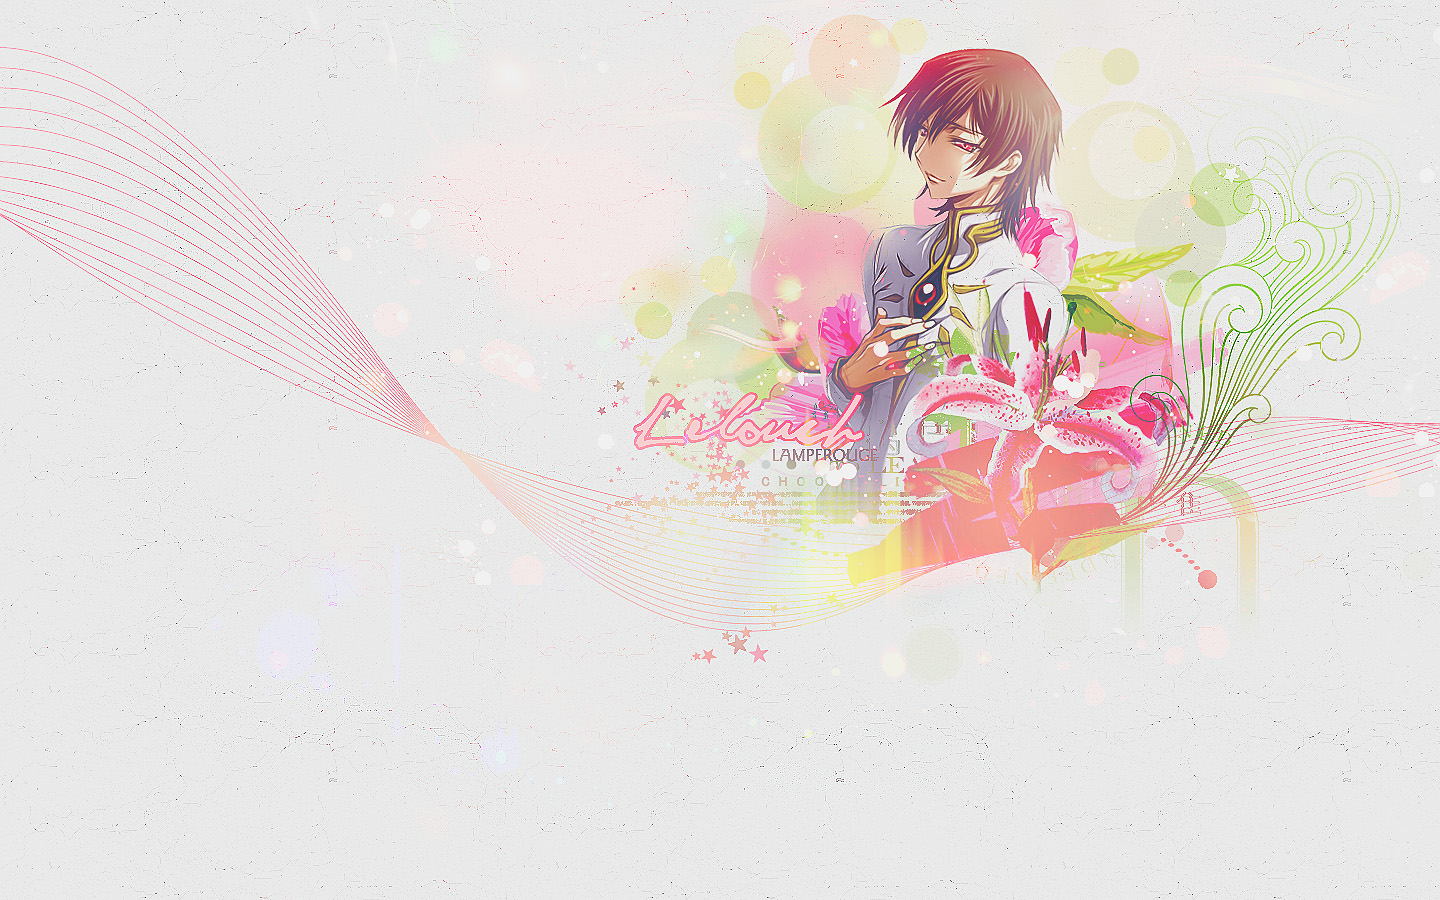 Wallpaper_-_Emperor Lelouch by lady-alucard